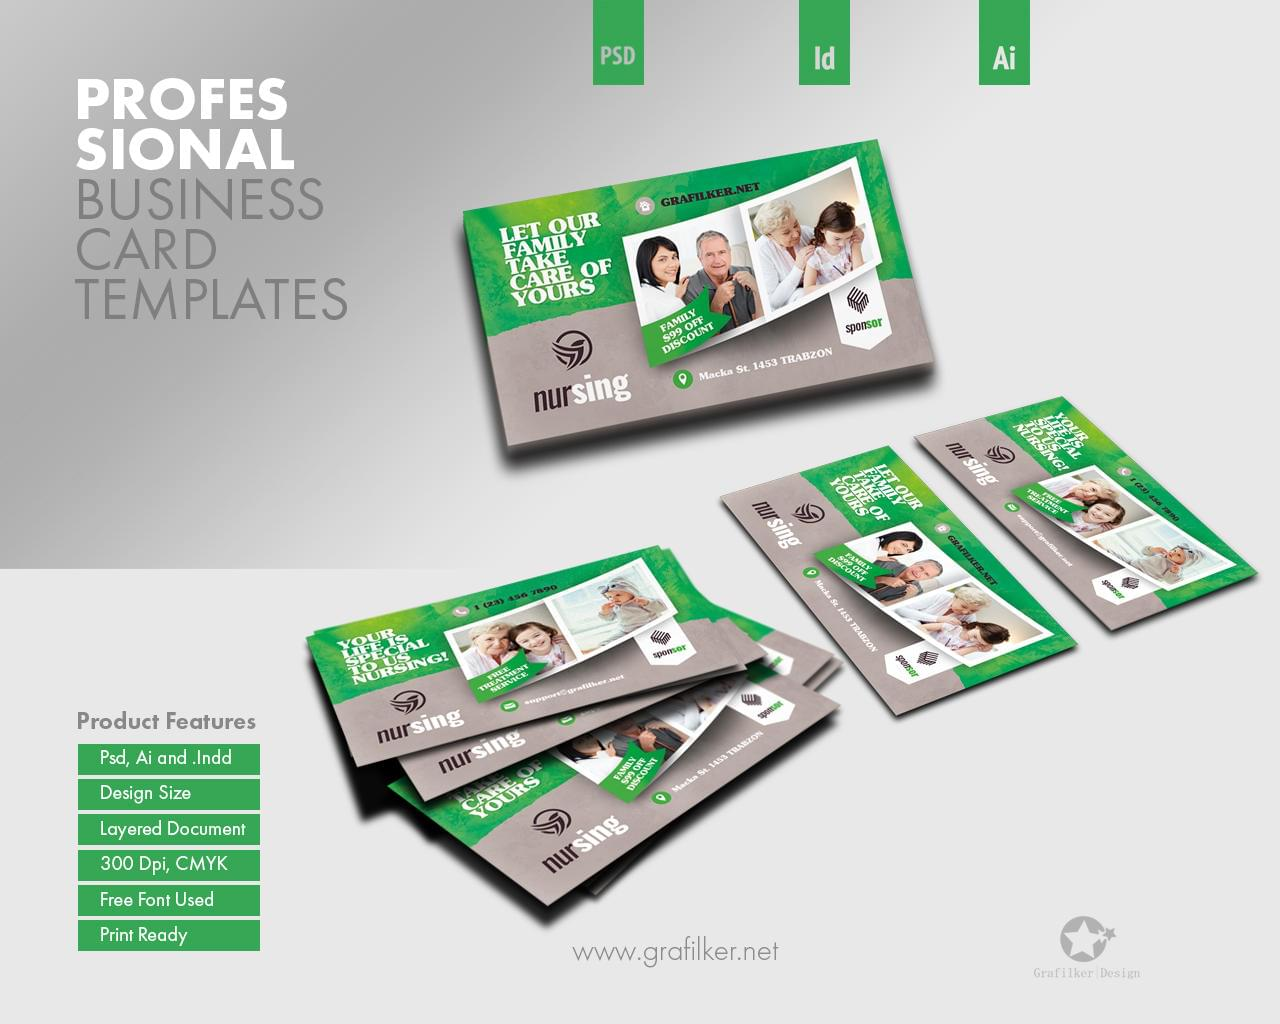 Professional business card templates by grafilker on envato studio professional business card templates cheaphphosting